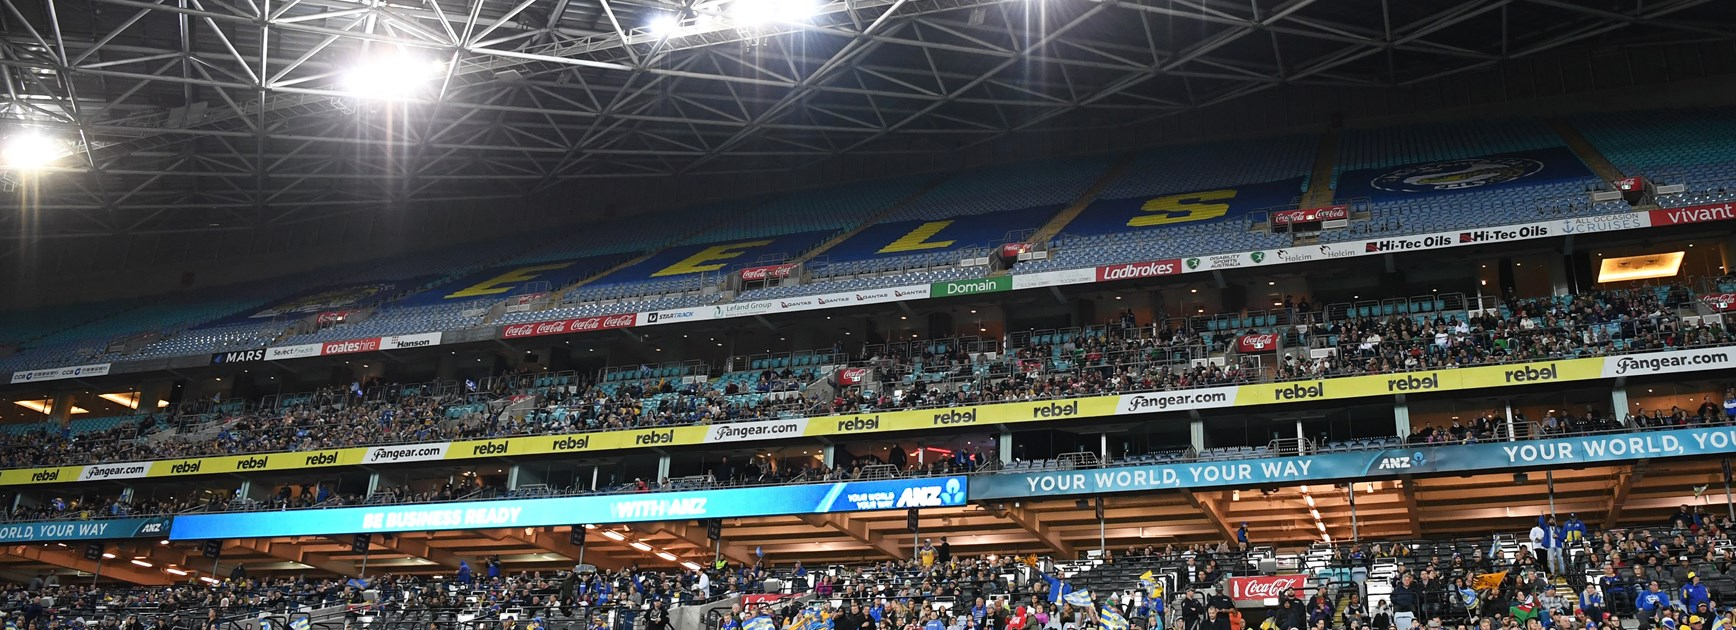 Fans First for ANZ Stadium Matches in 2018